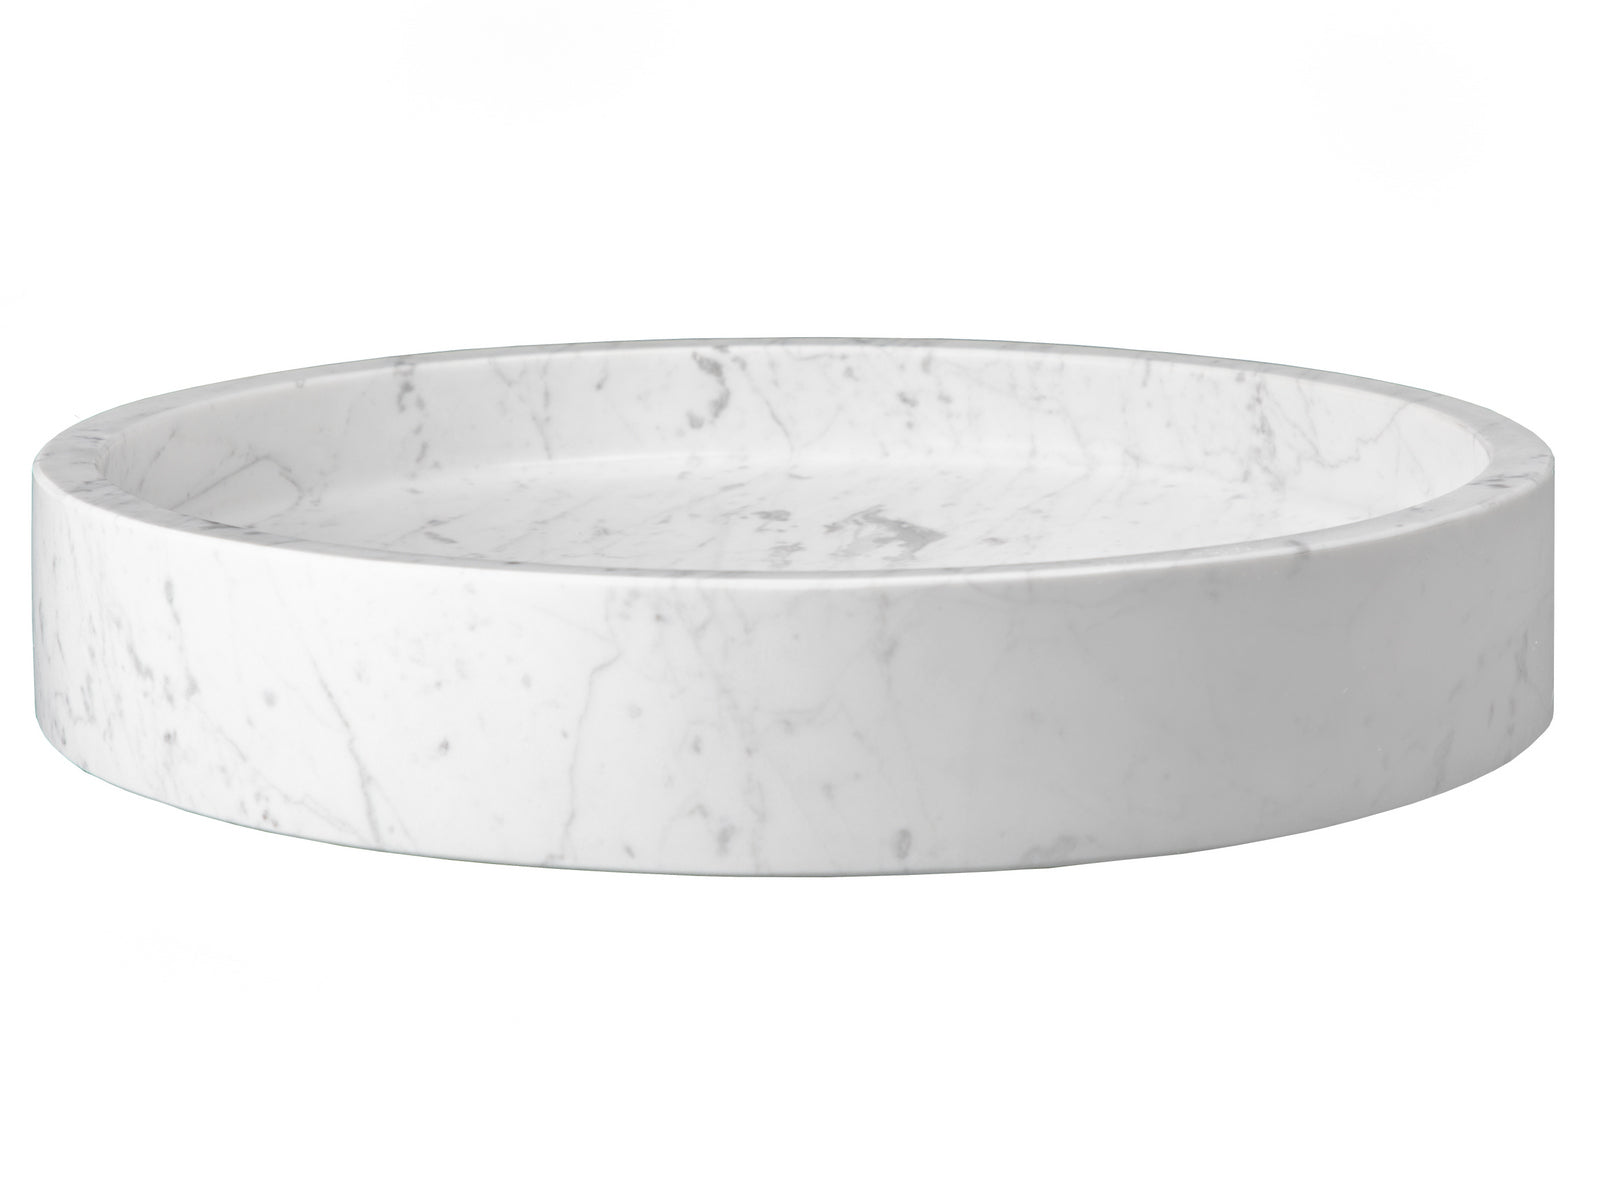 Low Round Vessel Sink - White Carrara Marble